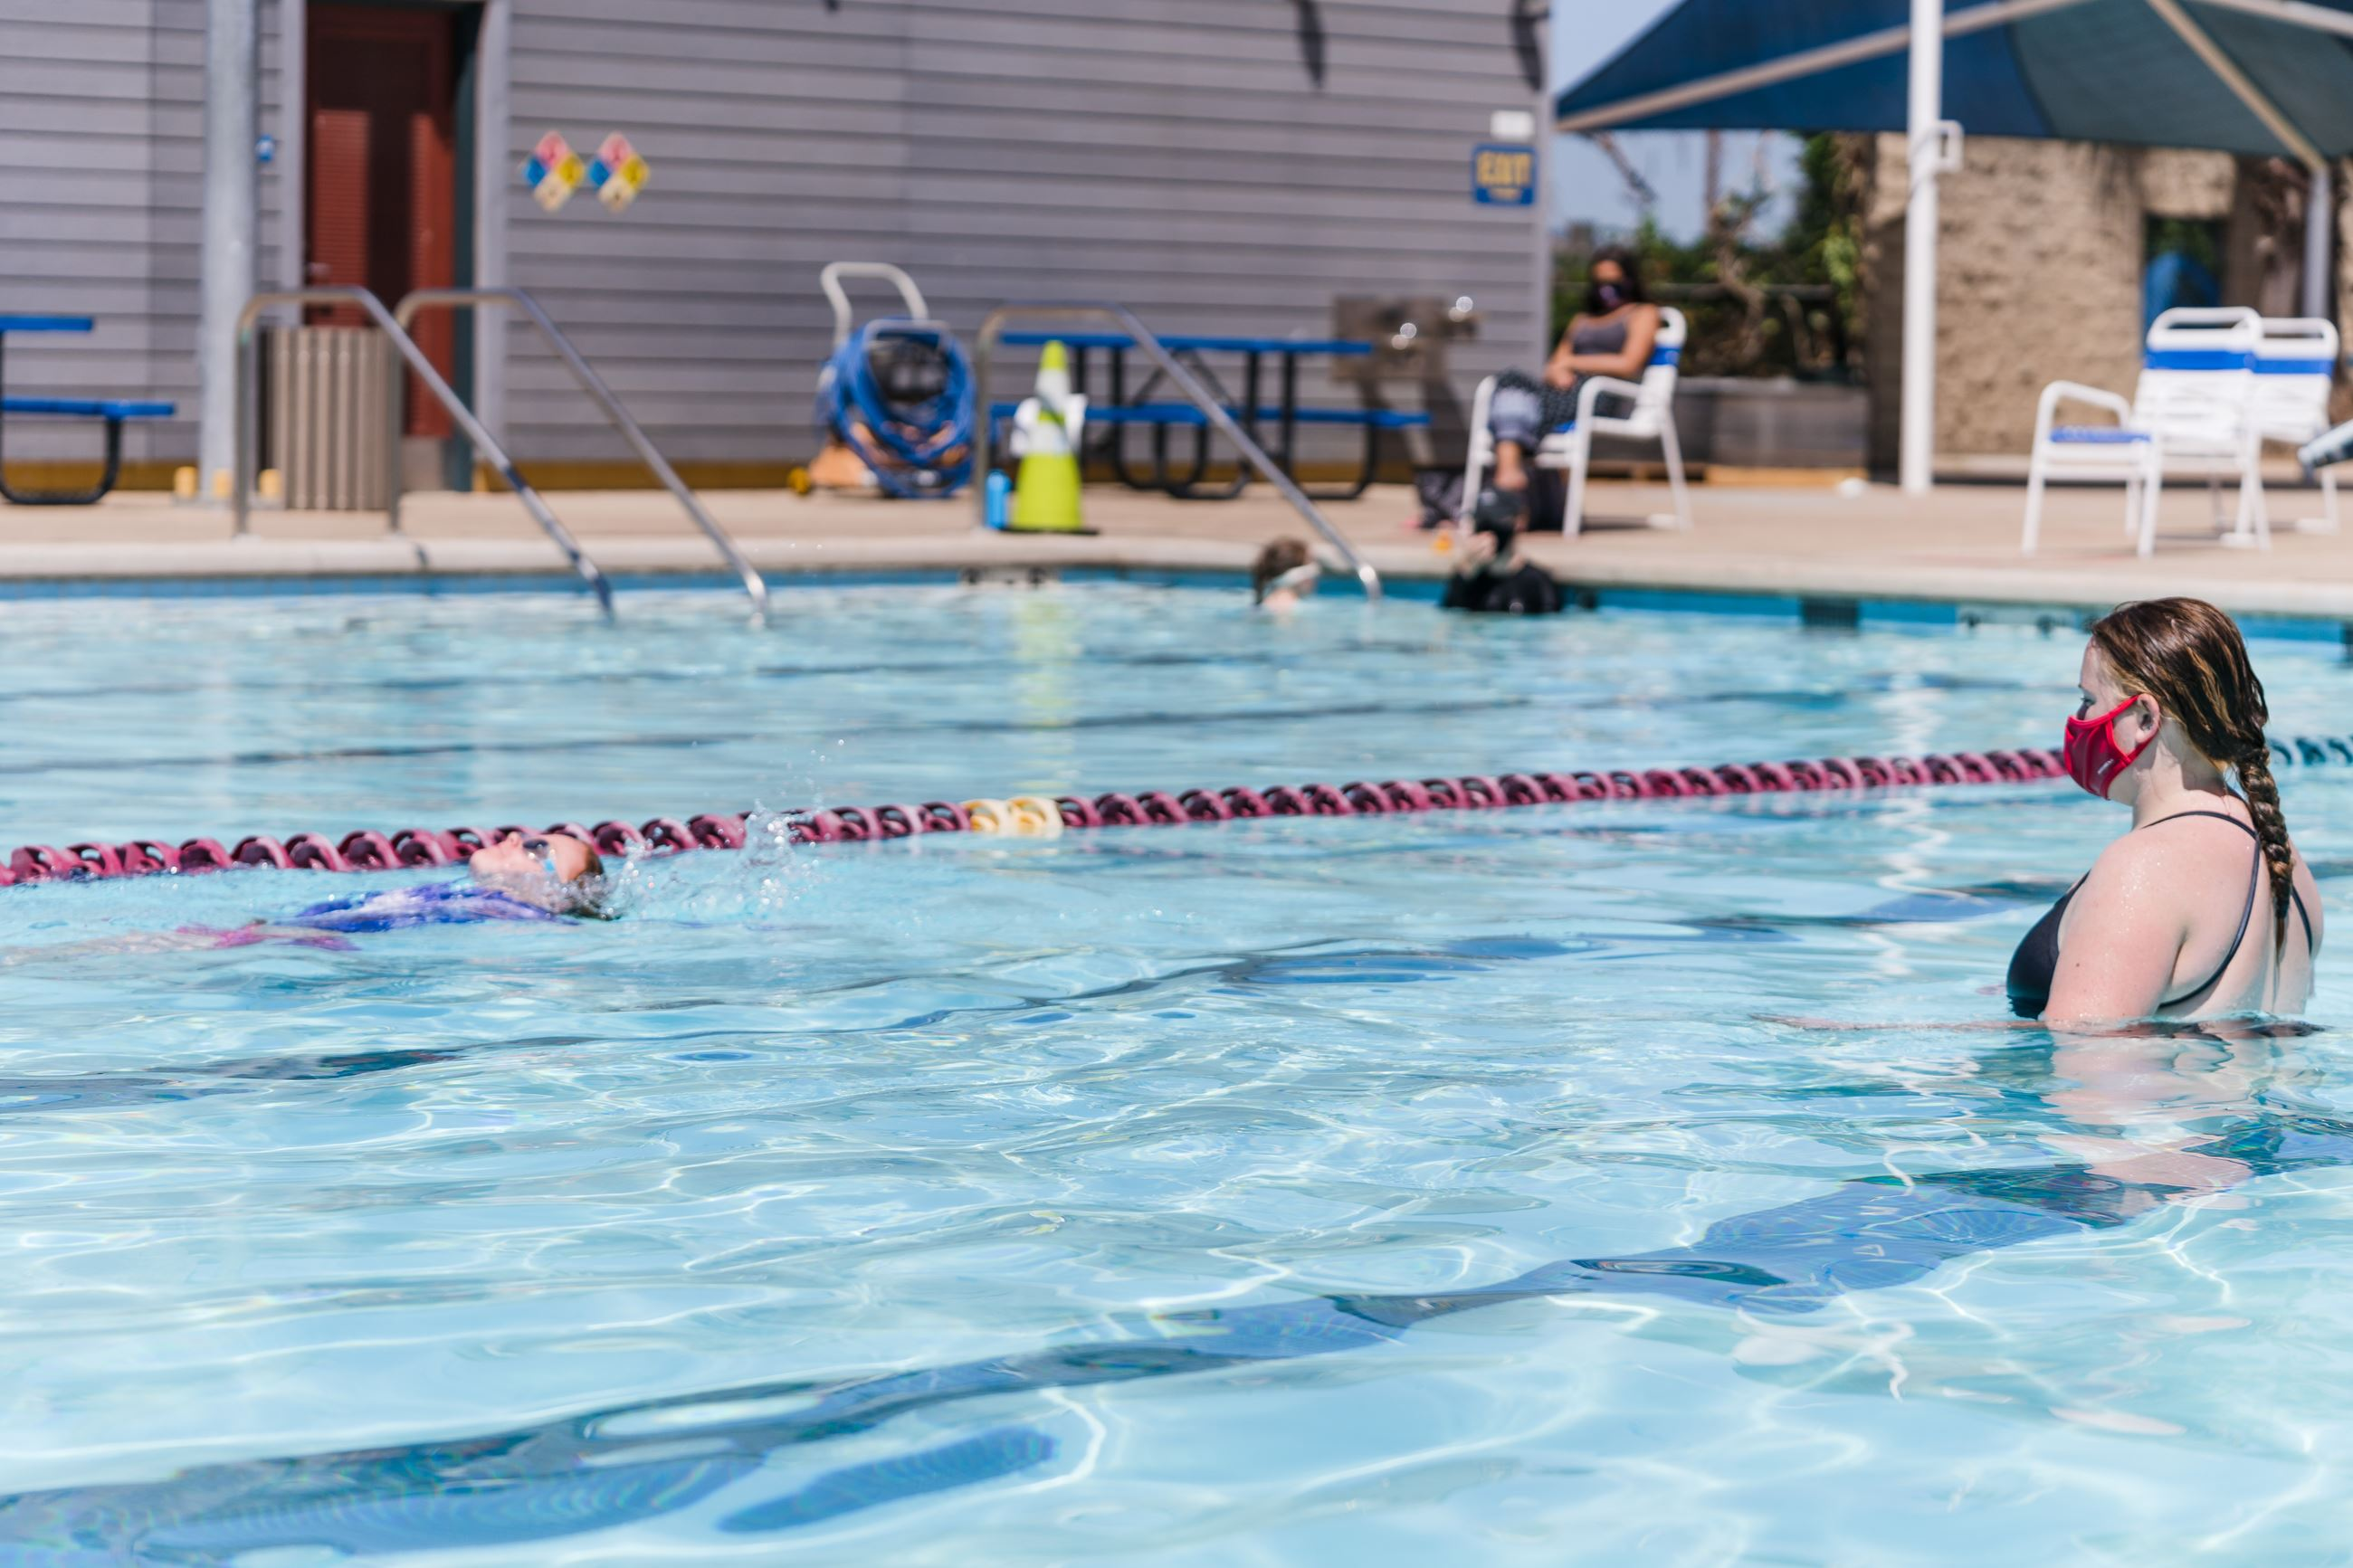 Outdoor Swim Lesson Photo, instructor wearing mask, at aquatics center